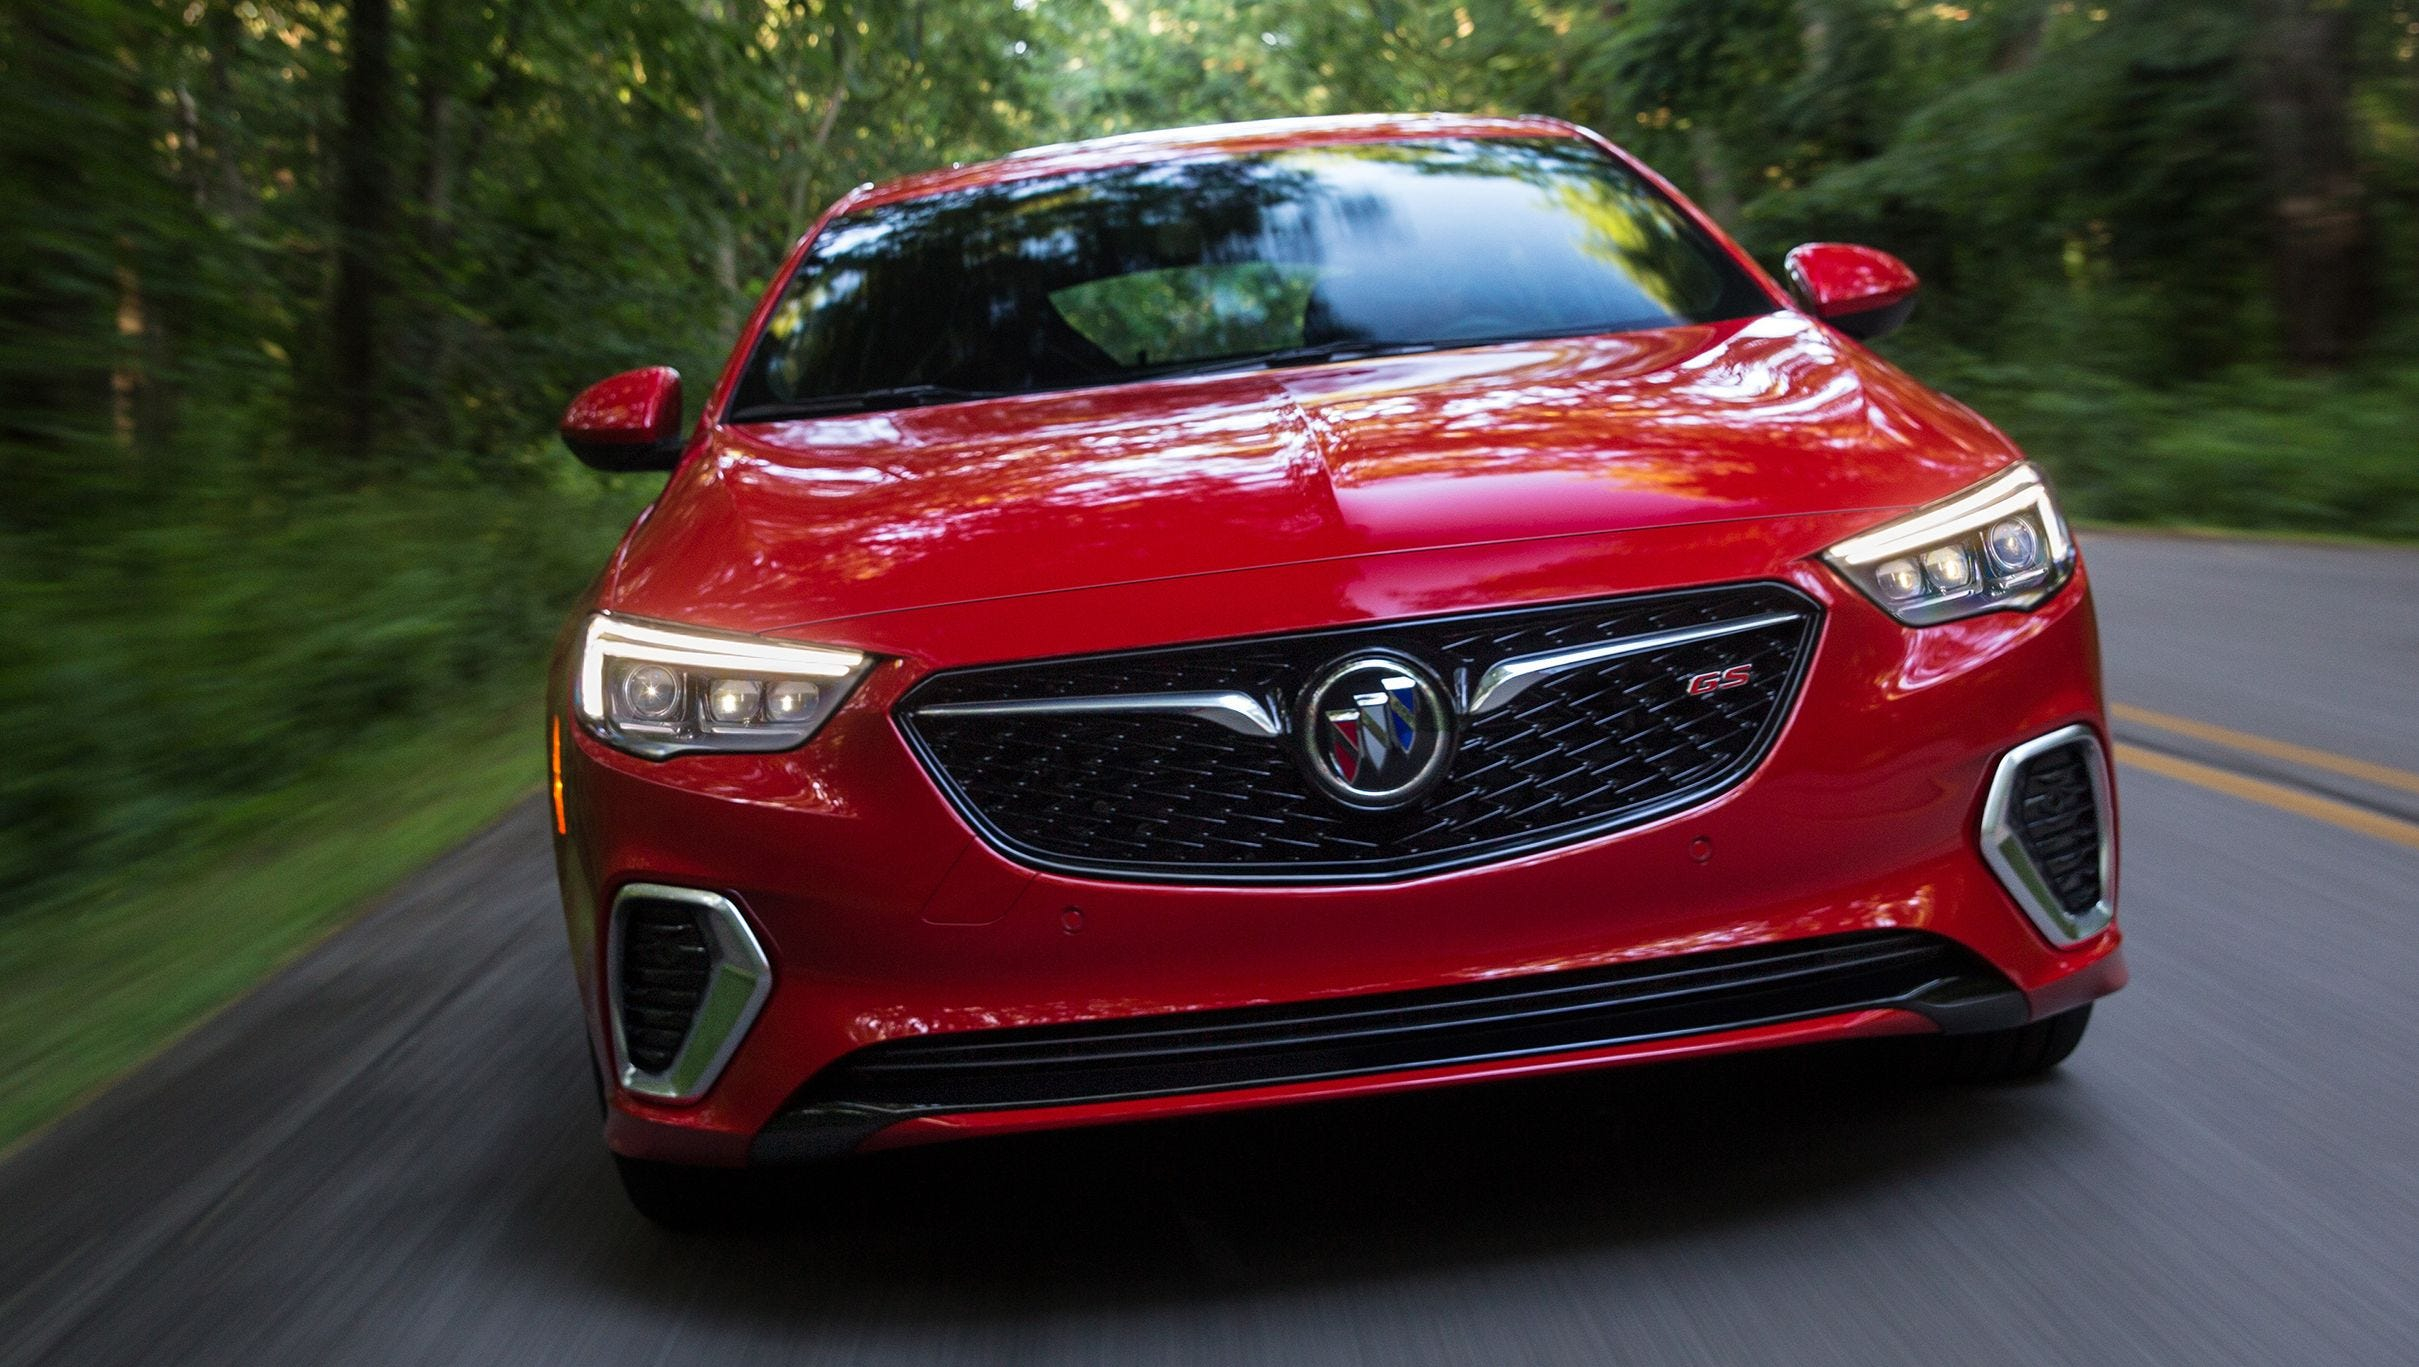 Buick Regal Discontinued: Gm Kills Passenger Car, Turns To Suvs 2021 Buick Regal Discontinued, Release Date, Engine